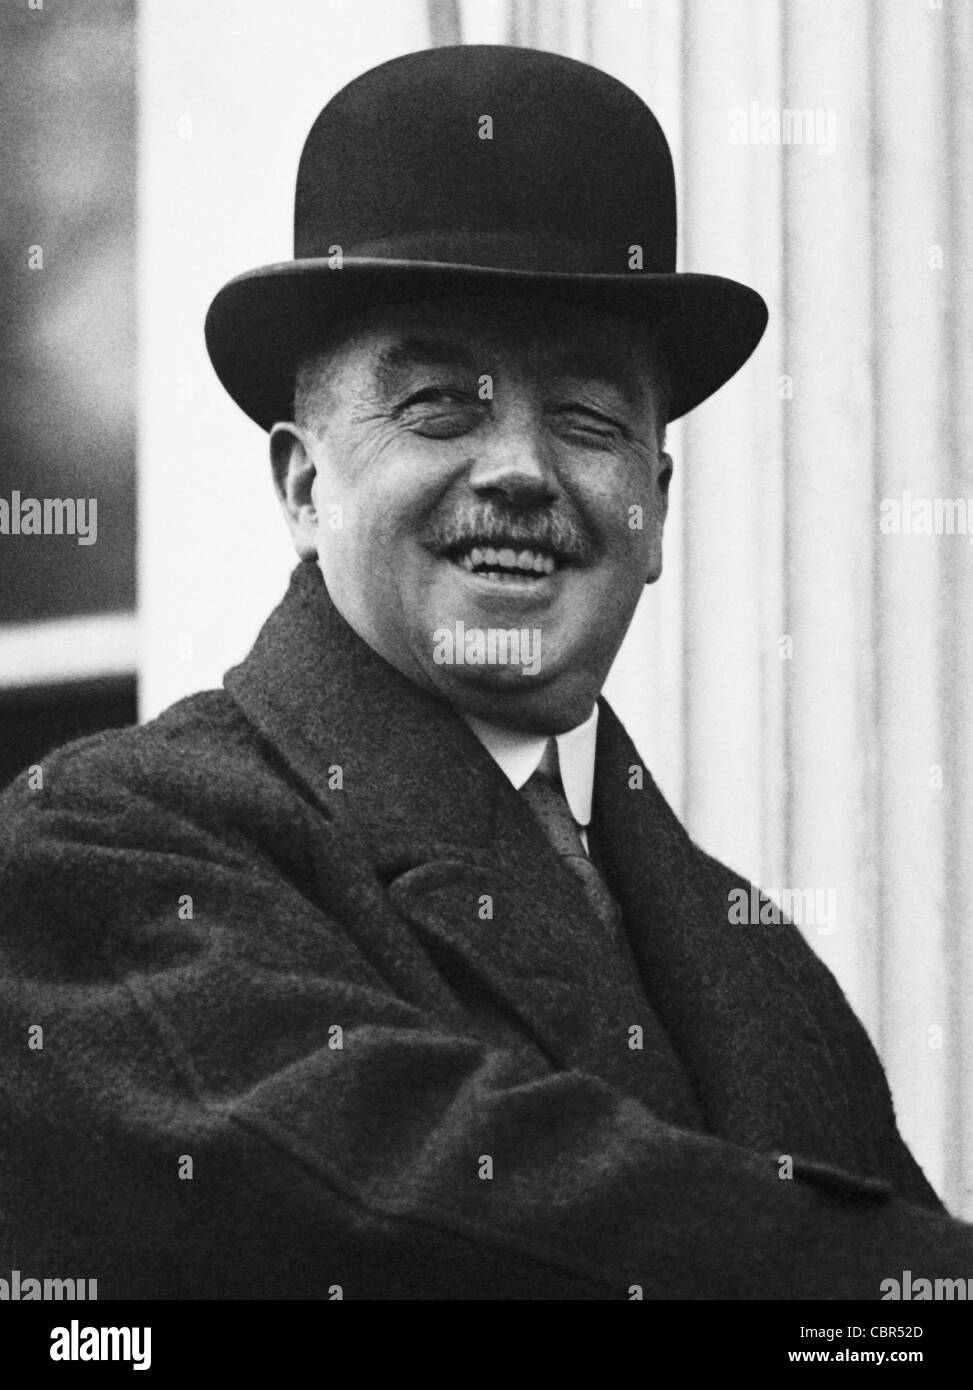 Vintage photo of British Labour politician Arthur Henderson (1863 - 1935) - winner of the Nobel Peace Prize in 1934. - Stock Image